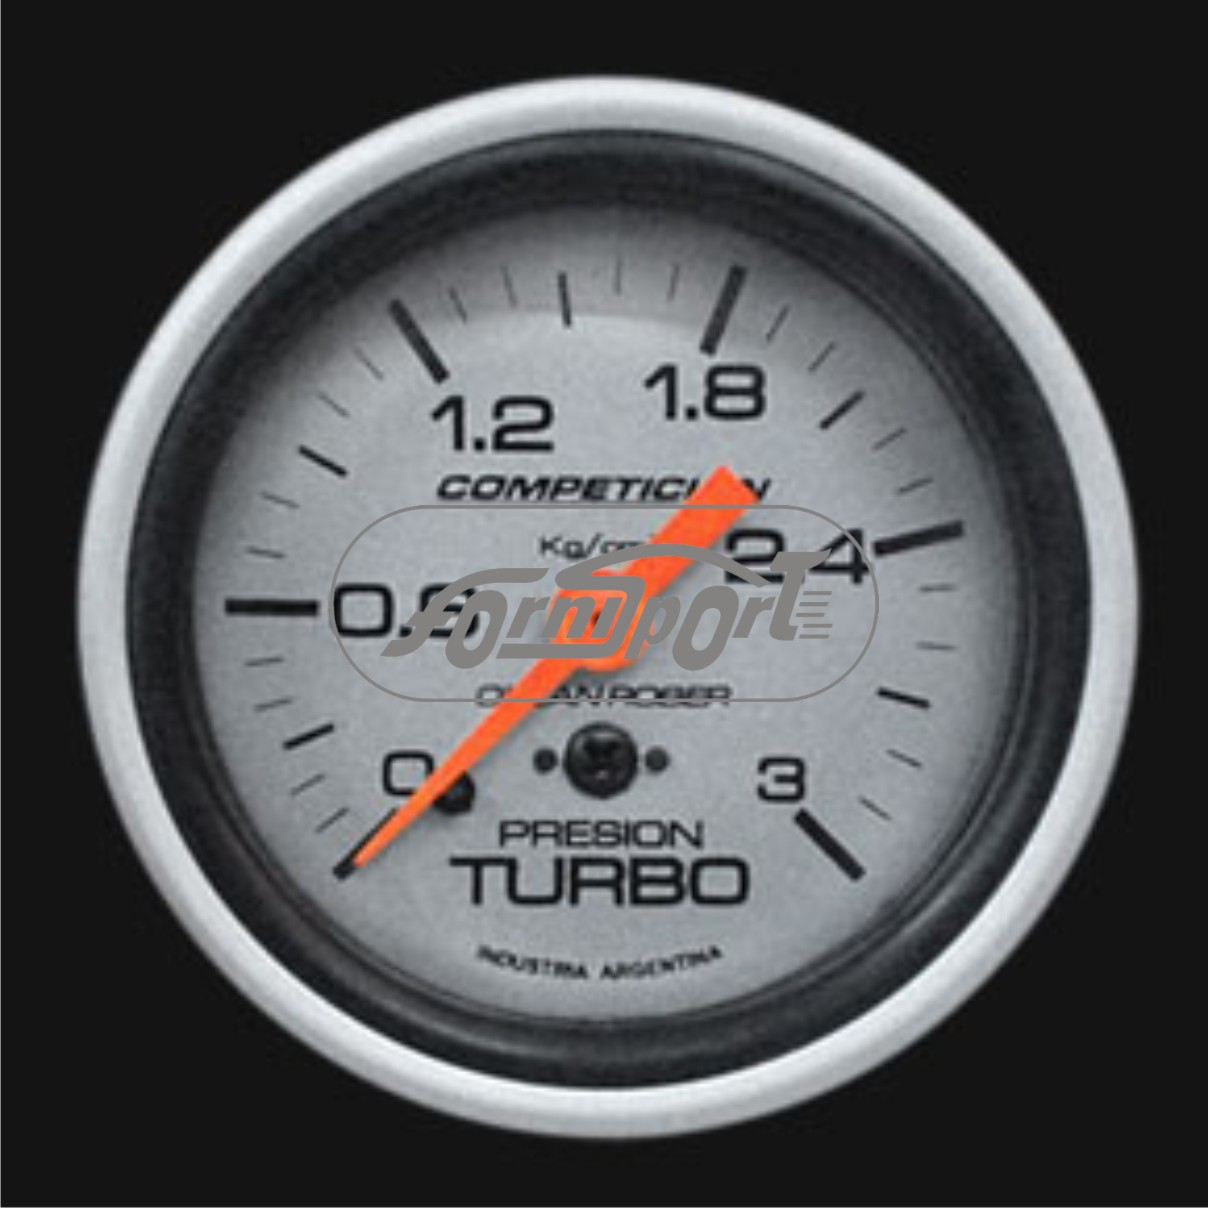 Marcador Pres Turbo 60 mm P O.Rober